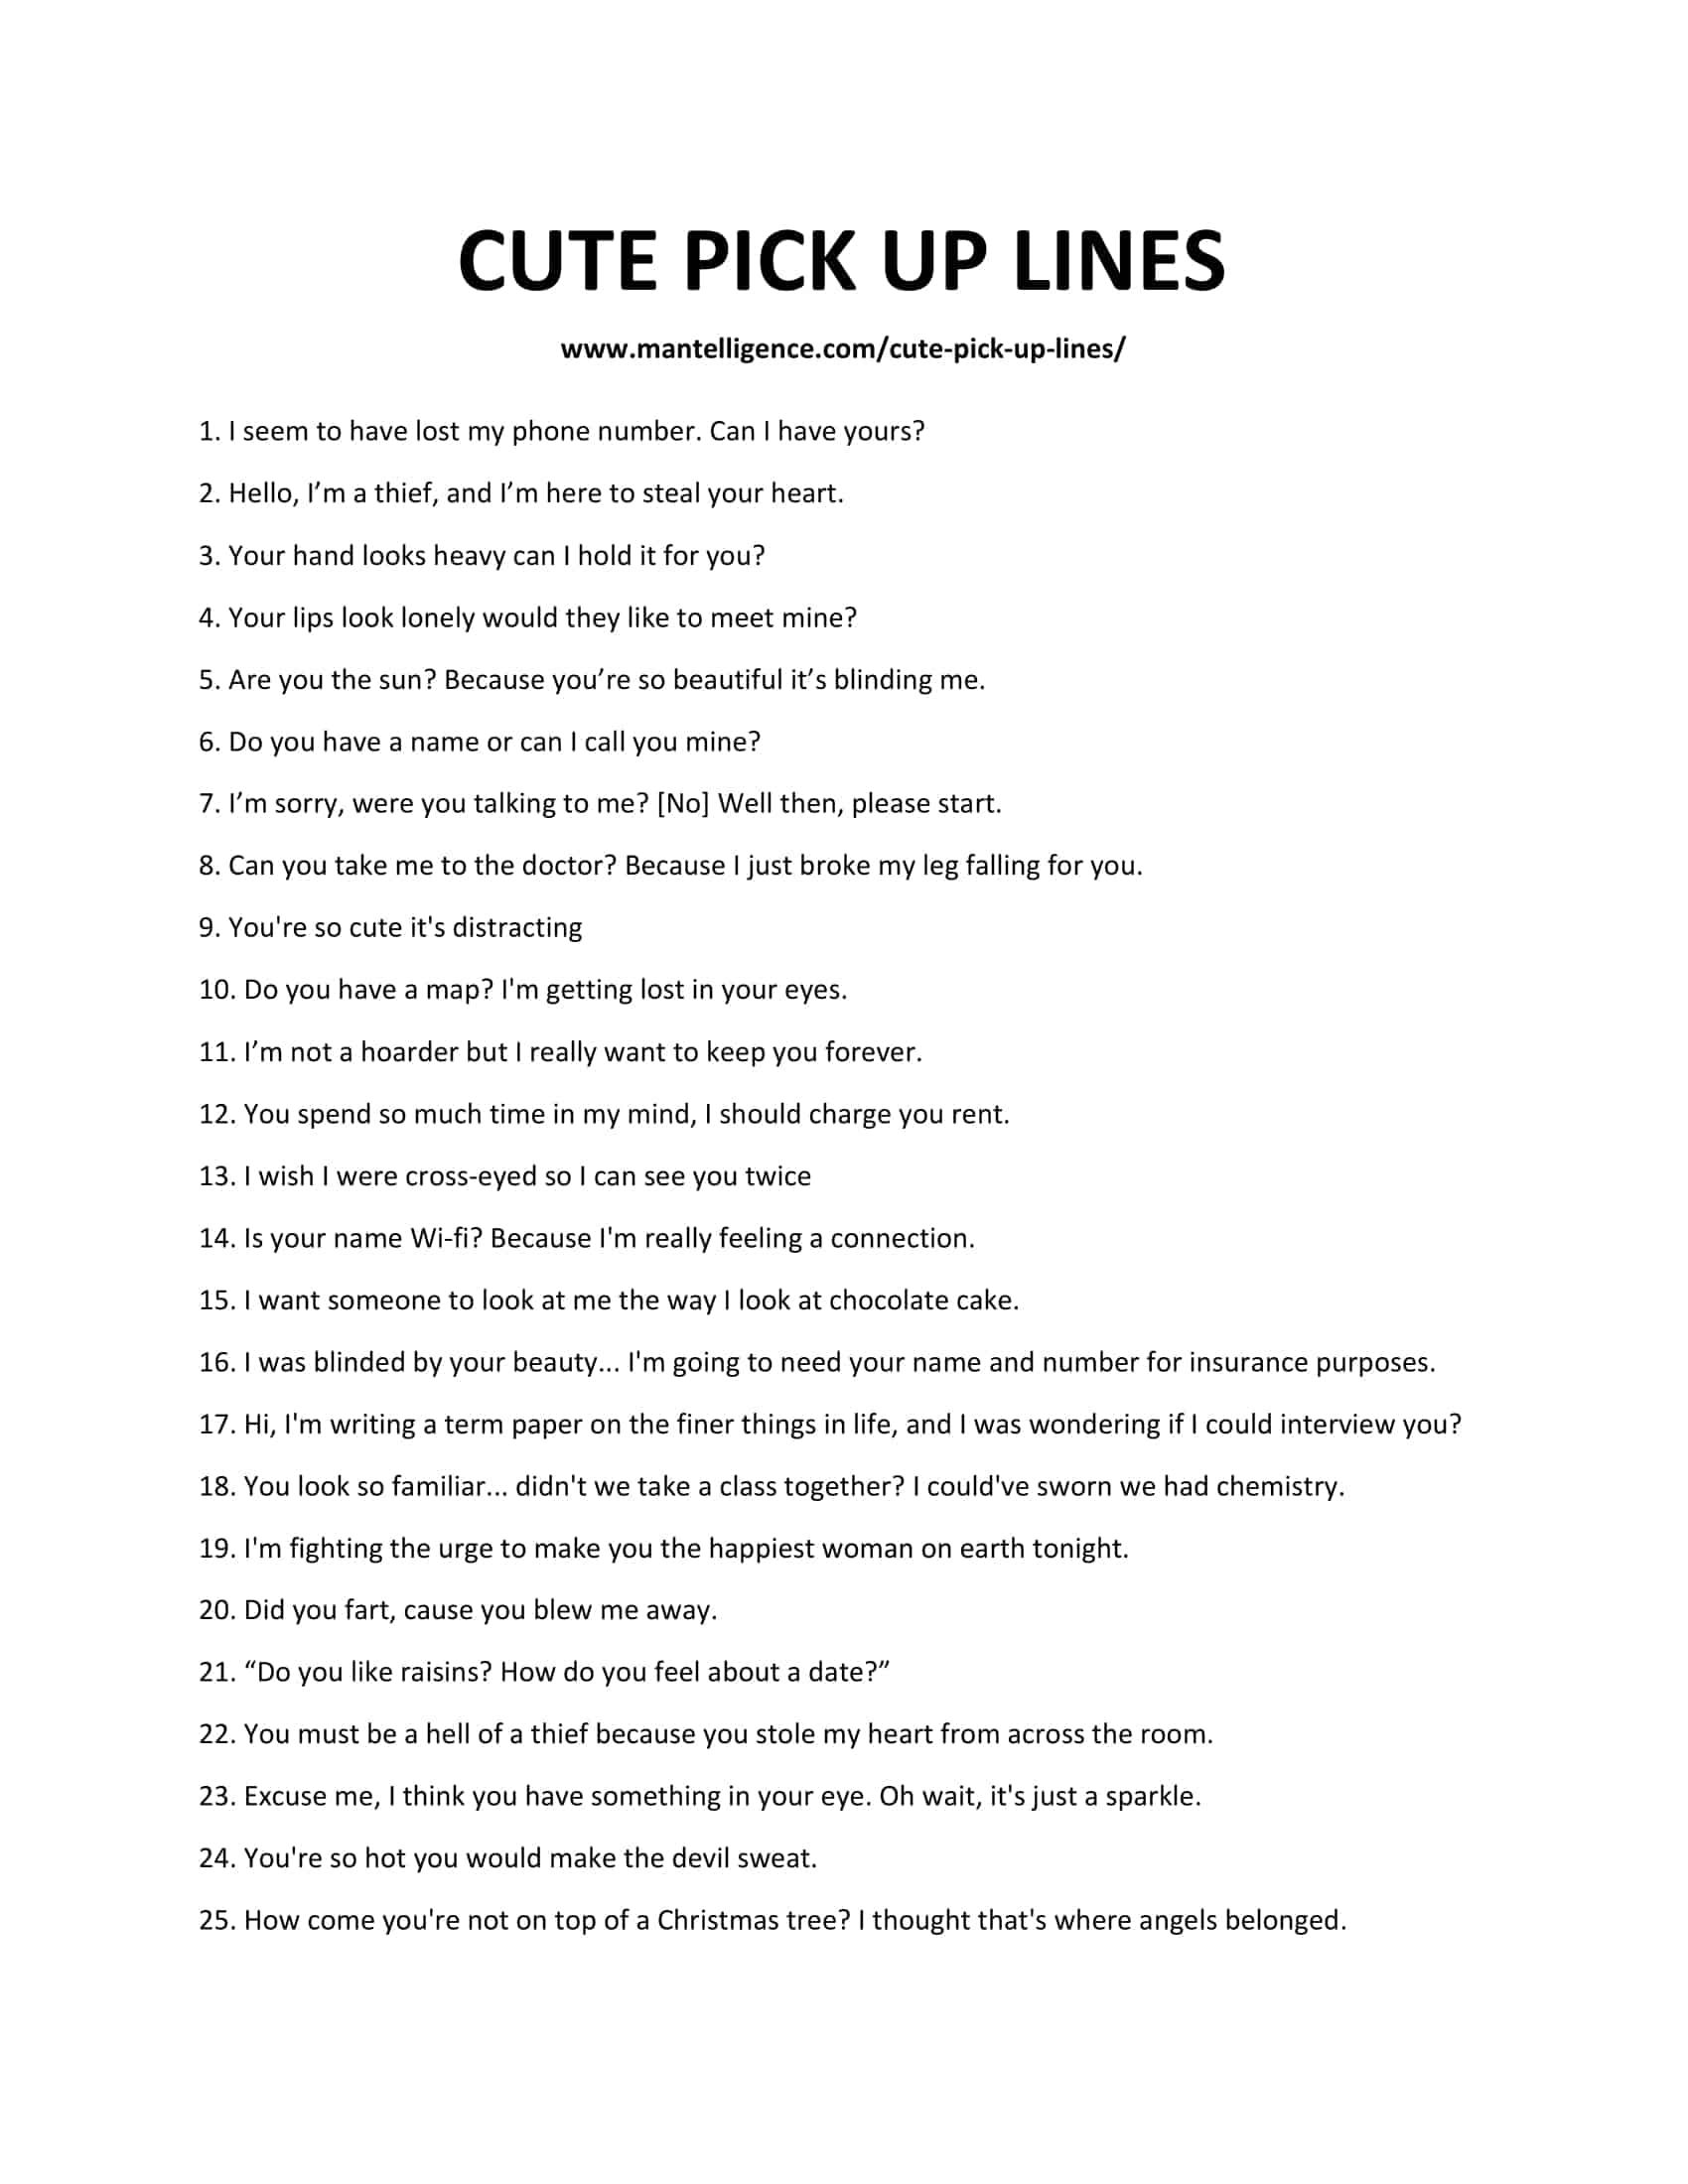 82 Best Cute Pick Up Lines These Lines Will Make Her Smile In 2020 Clever Pick Up Lines Pick Up Lines Funny Pick Up Lines